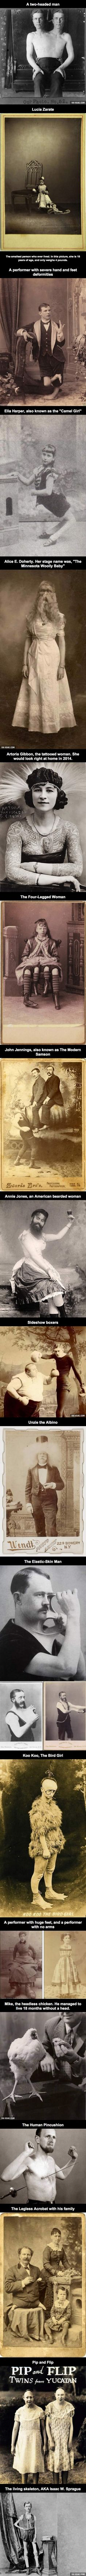 19 Vintage Photos Of Sideshow Circus Performers... don't like to label them creepy but don't know where else to put them